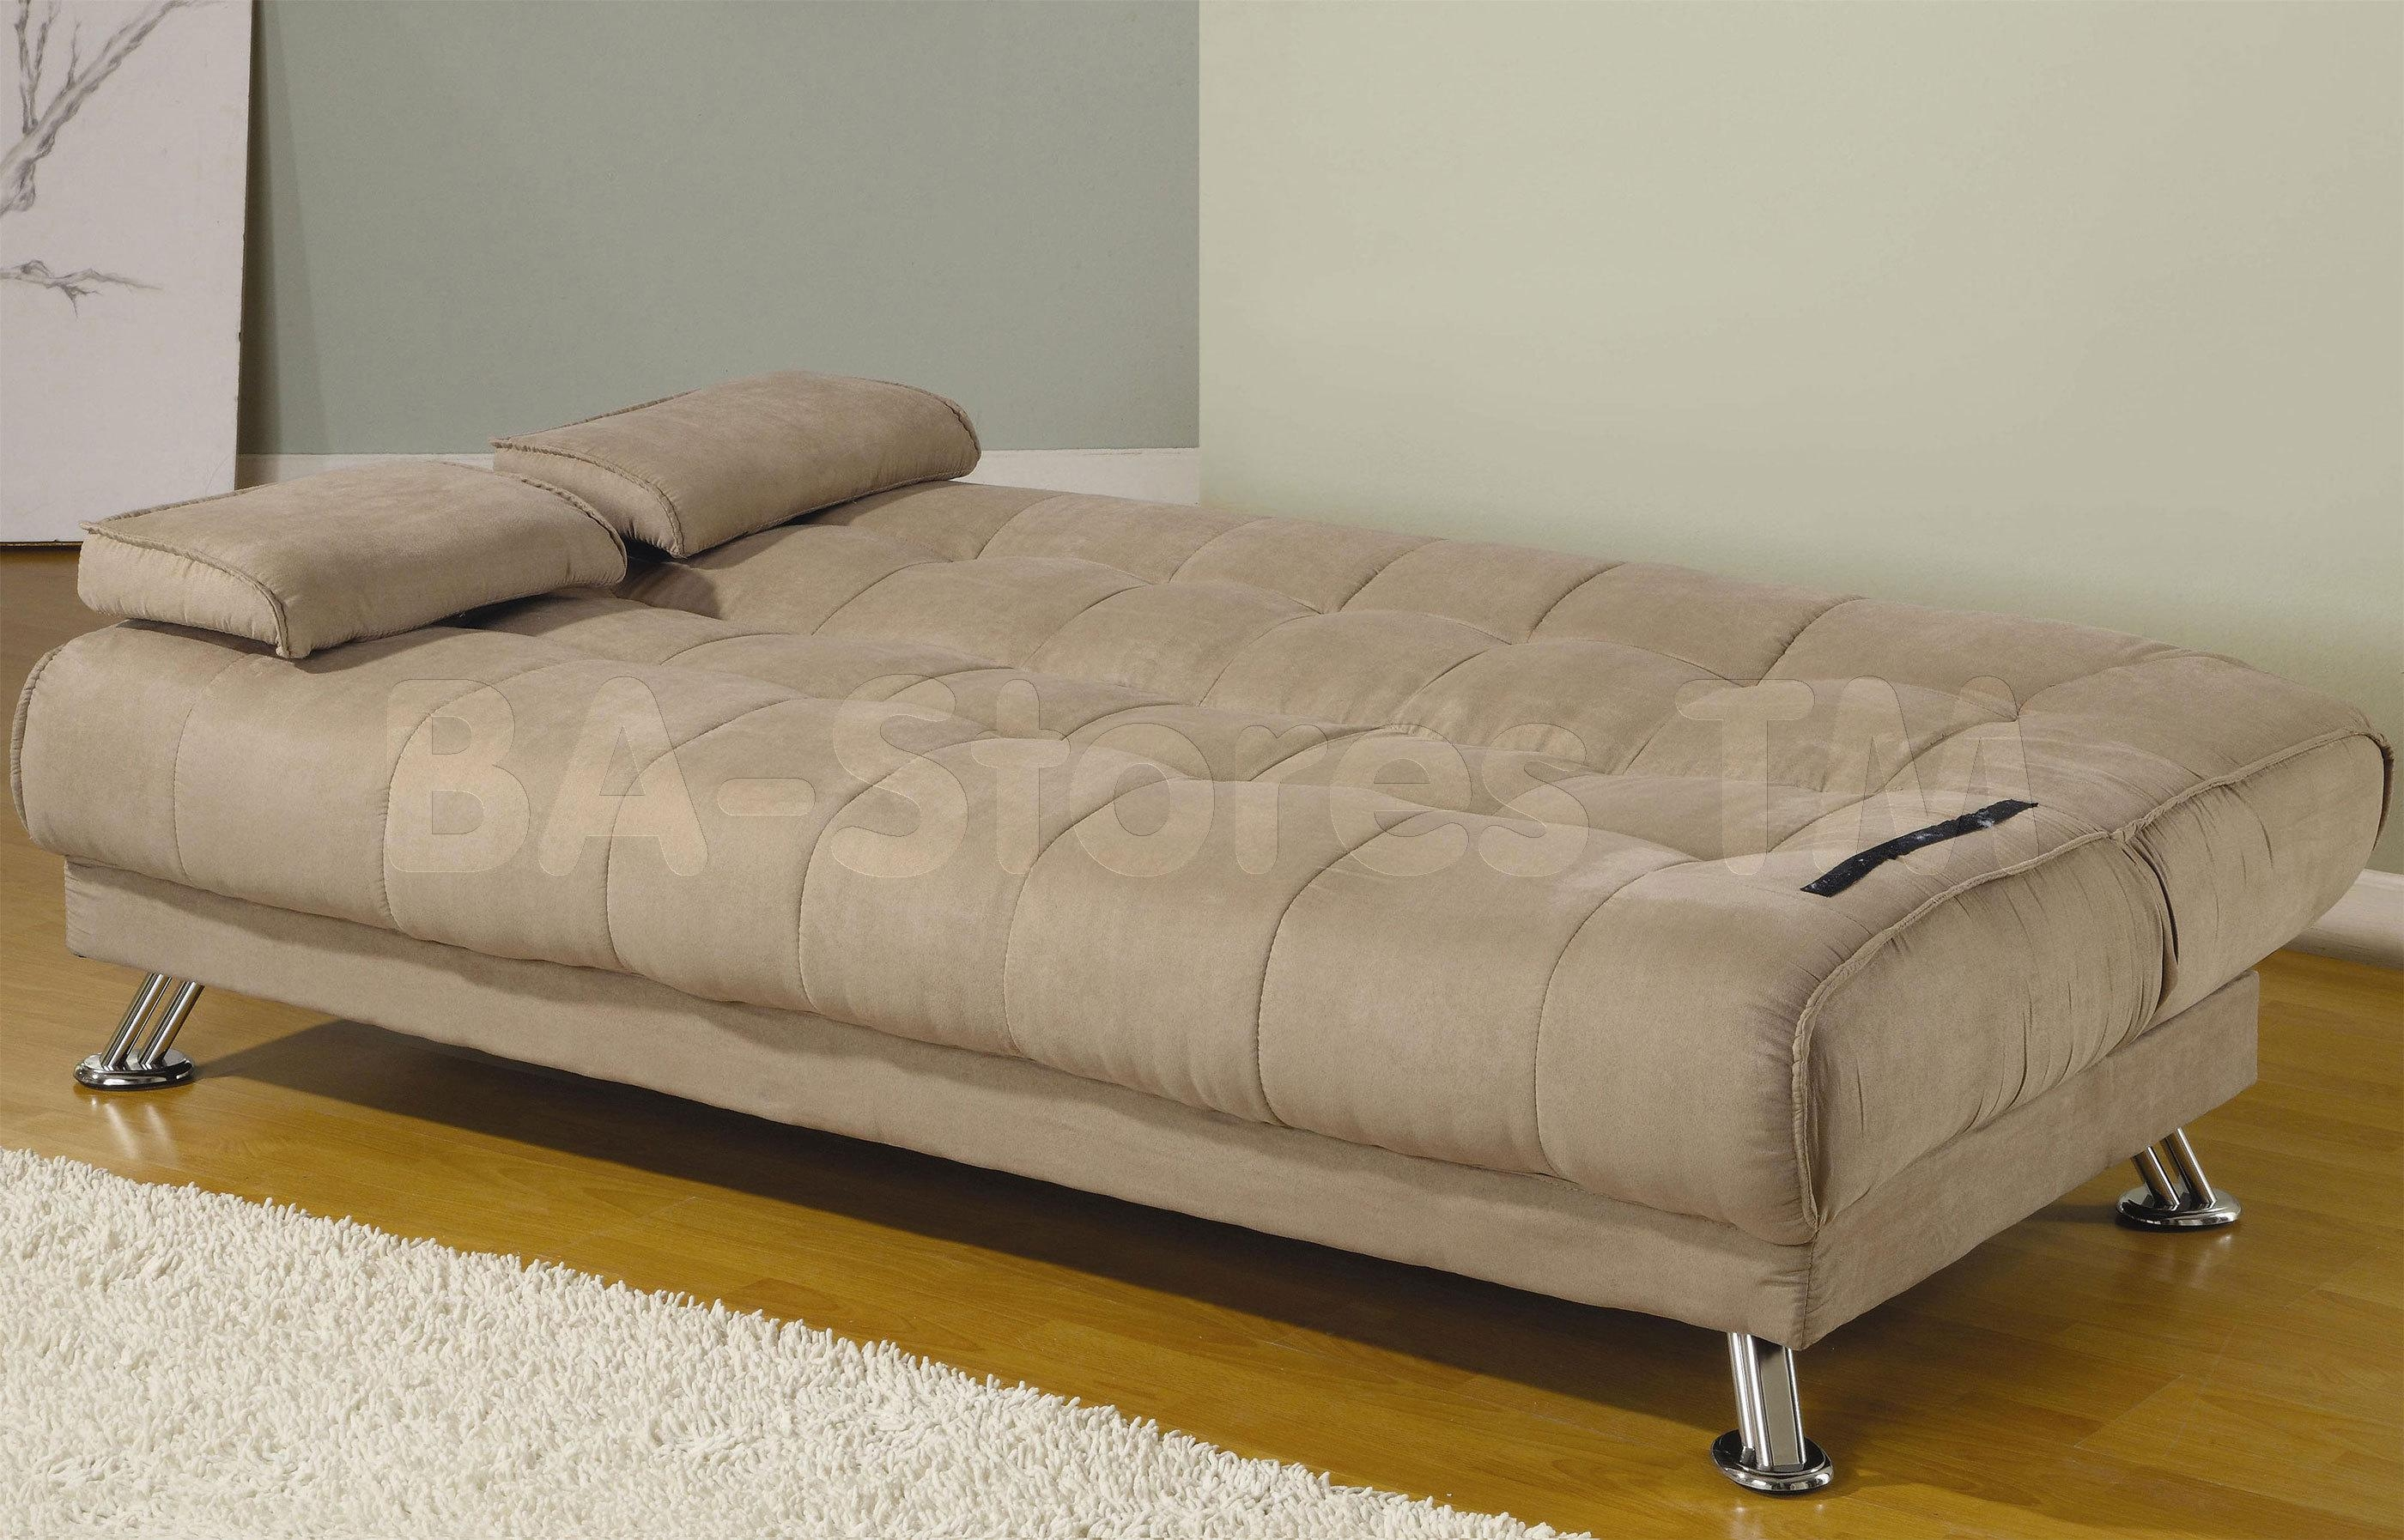 Full Size Sofa Bed Sheets | Tehranmix Decoration Within Sofa Sleeper Sheets (Image 2 of 20)